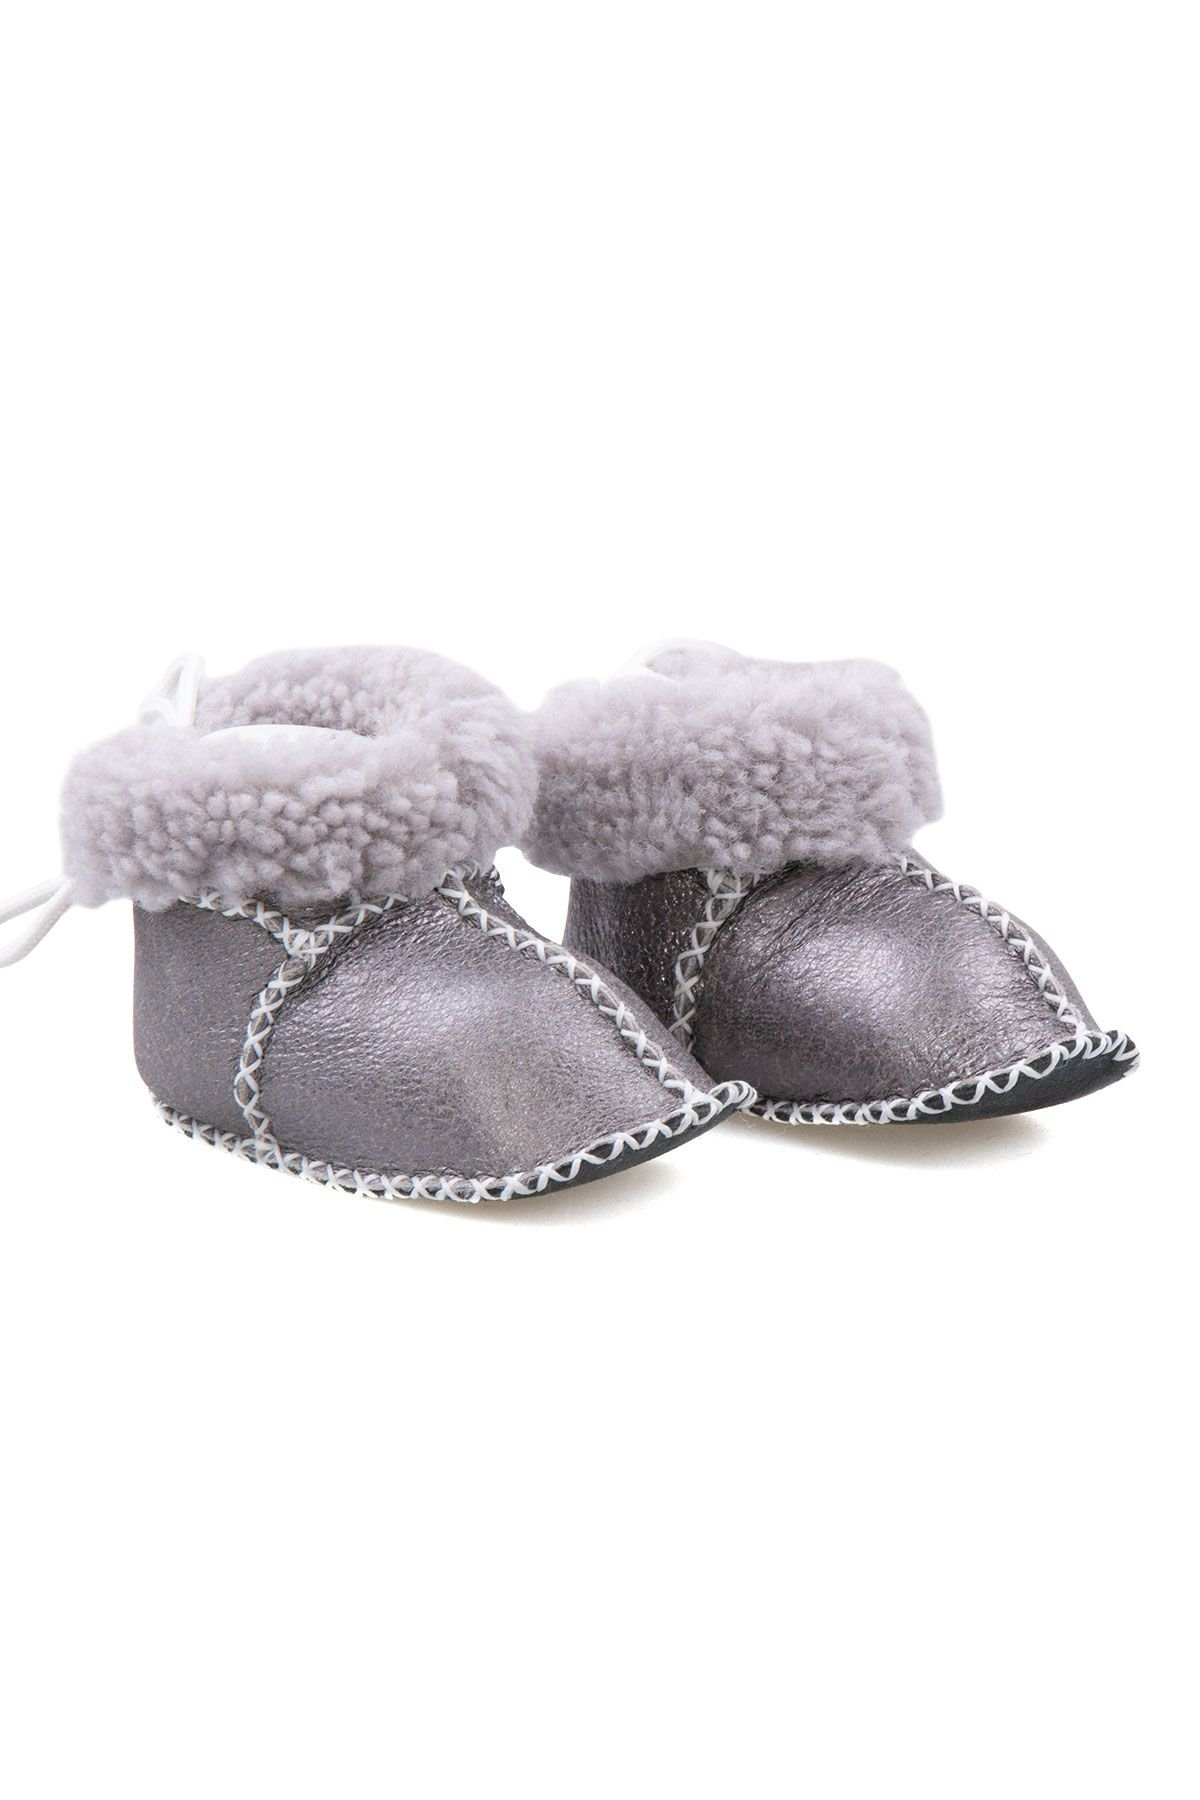 Pegia Shearling Baby's Booties 141114 Gray